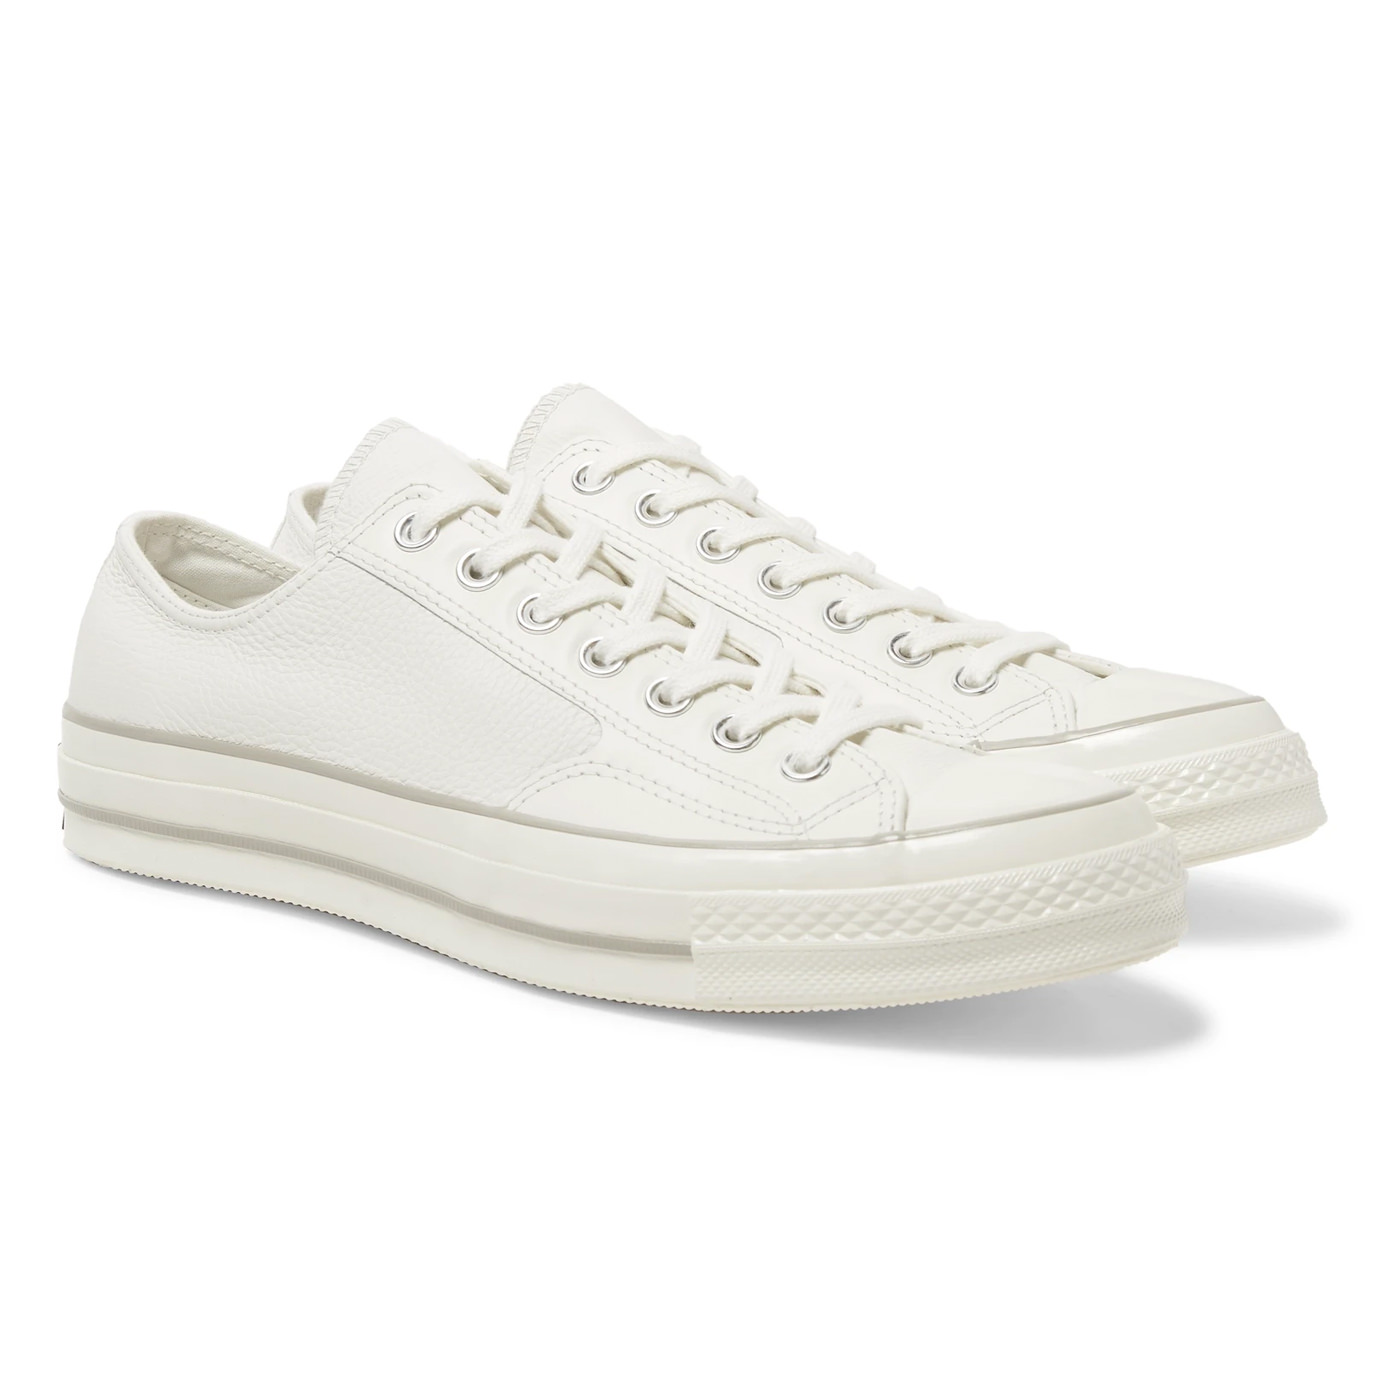 Style Mr Porter Sneakers Converse Chuck Taylor All Star Cuir Blanc